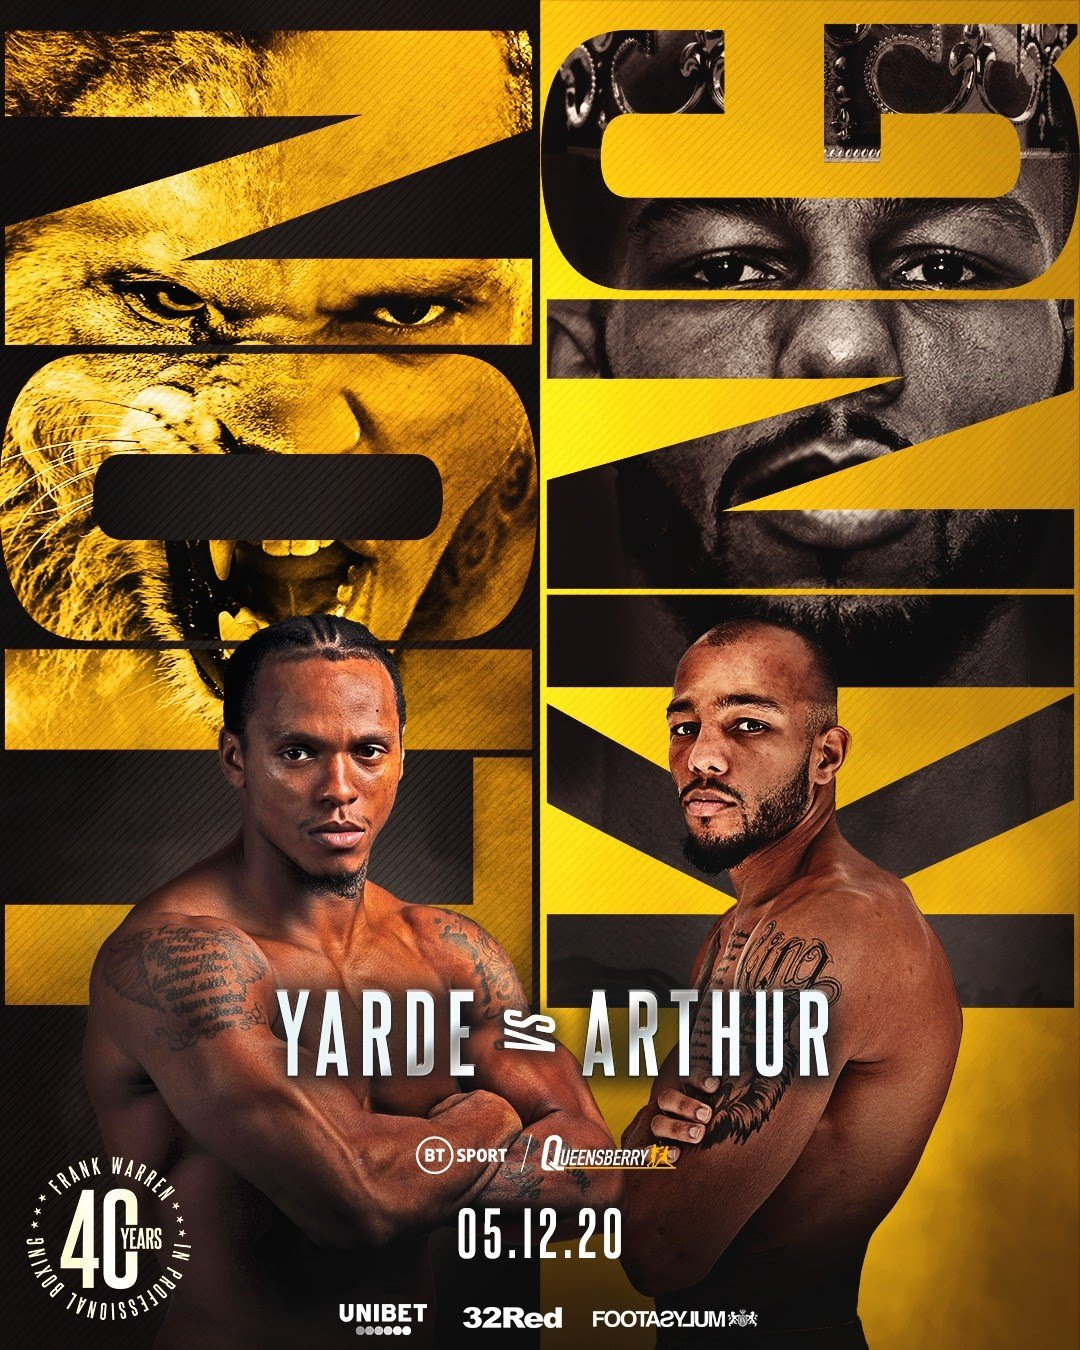 Anthony Yarde, Lyndon Arthur - LYNDON ARTHUR will make the second defense of his Commonwealth Light-Heavyweight championship against Anthony Yarde on Saturday, December 5, in another huge night of boxing on BT Sport.